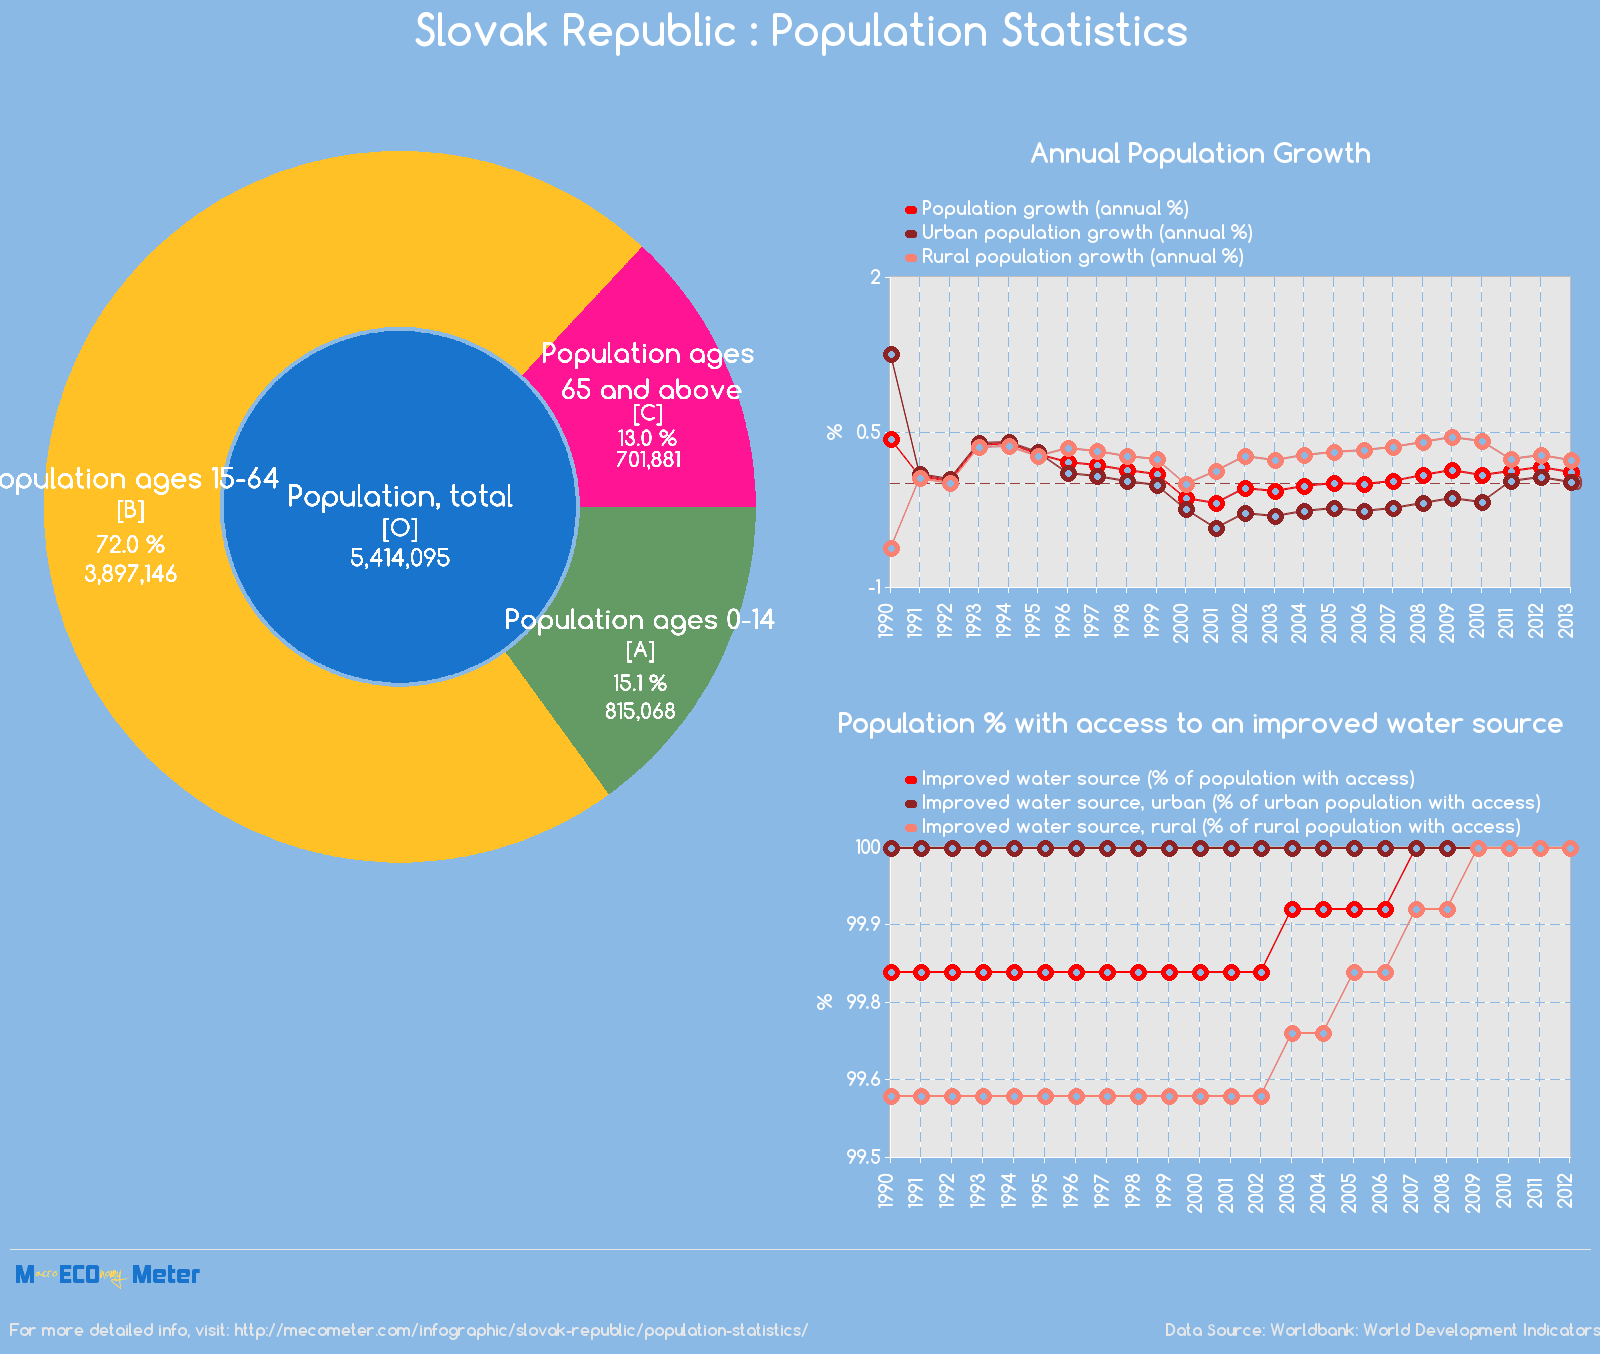 Slovak Republic : Population Statistics